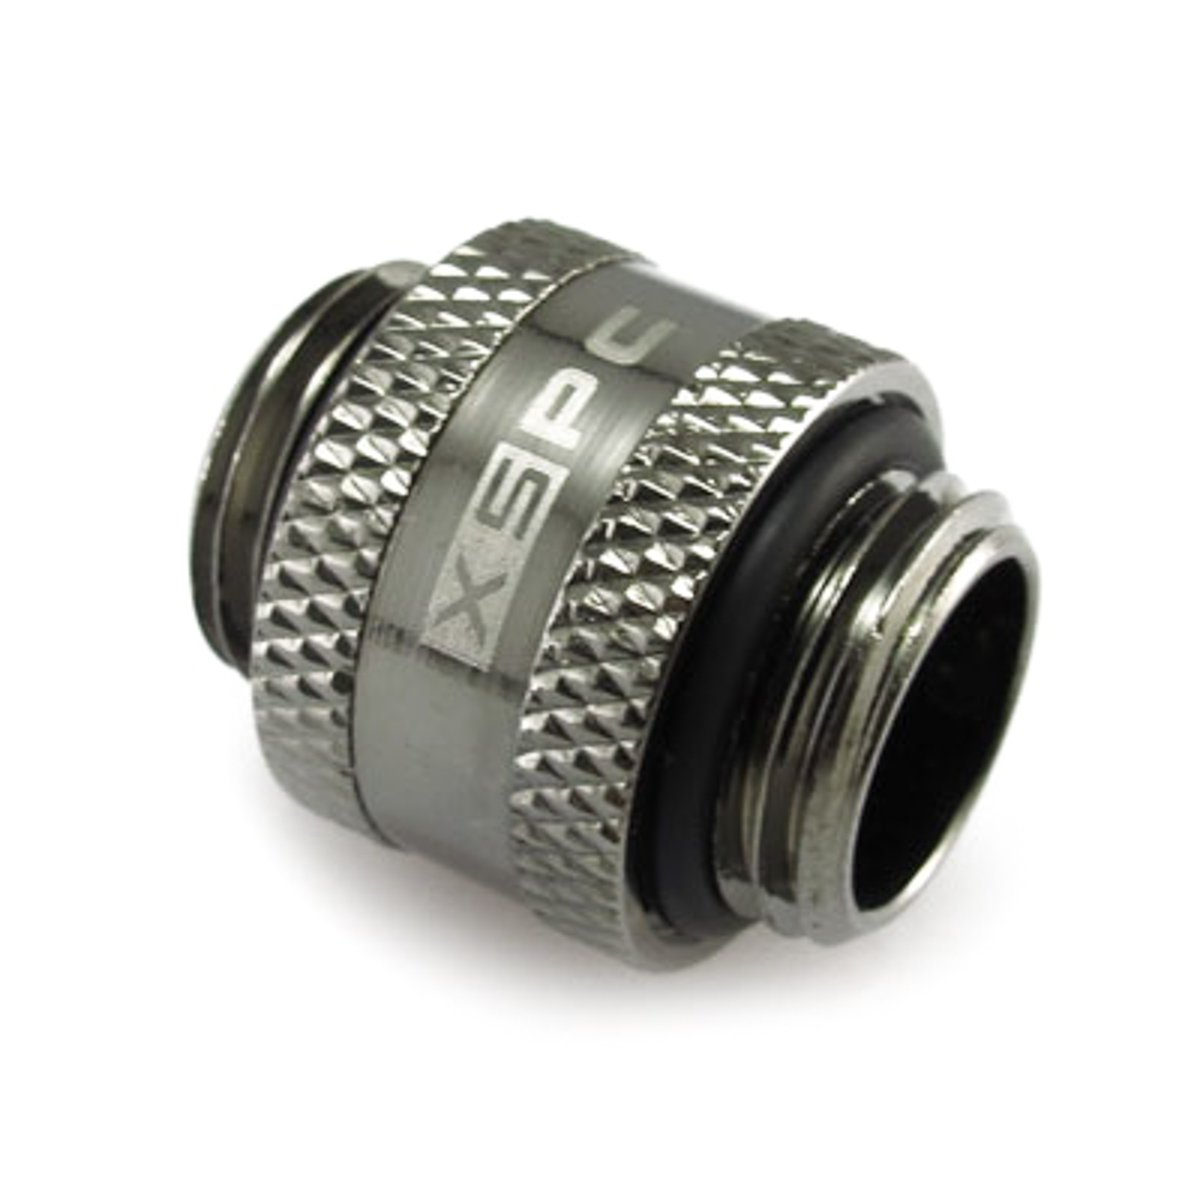 "XSPC G1/4"" Male to Male Rotary Fitting, Black Chrome"